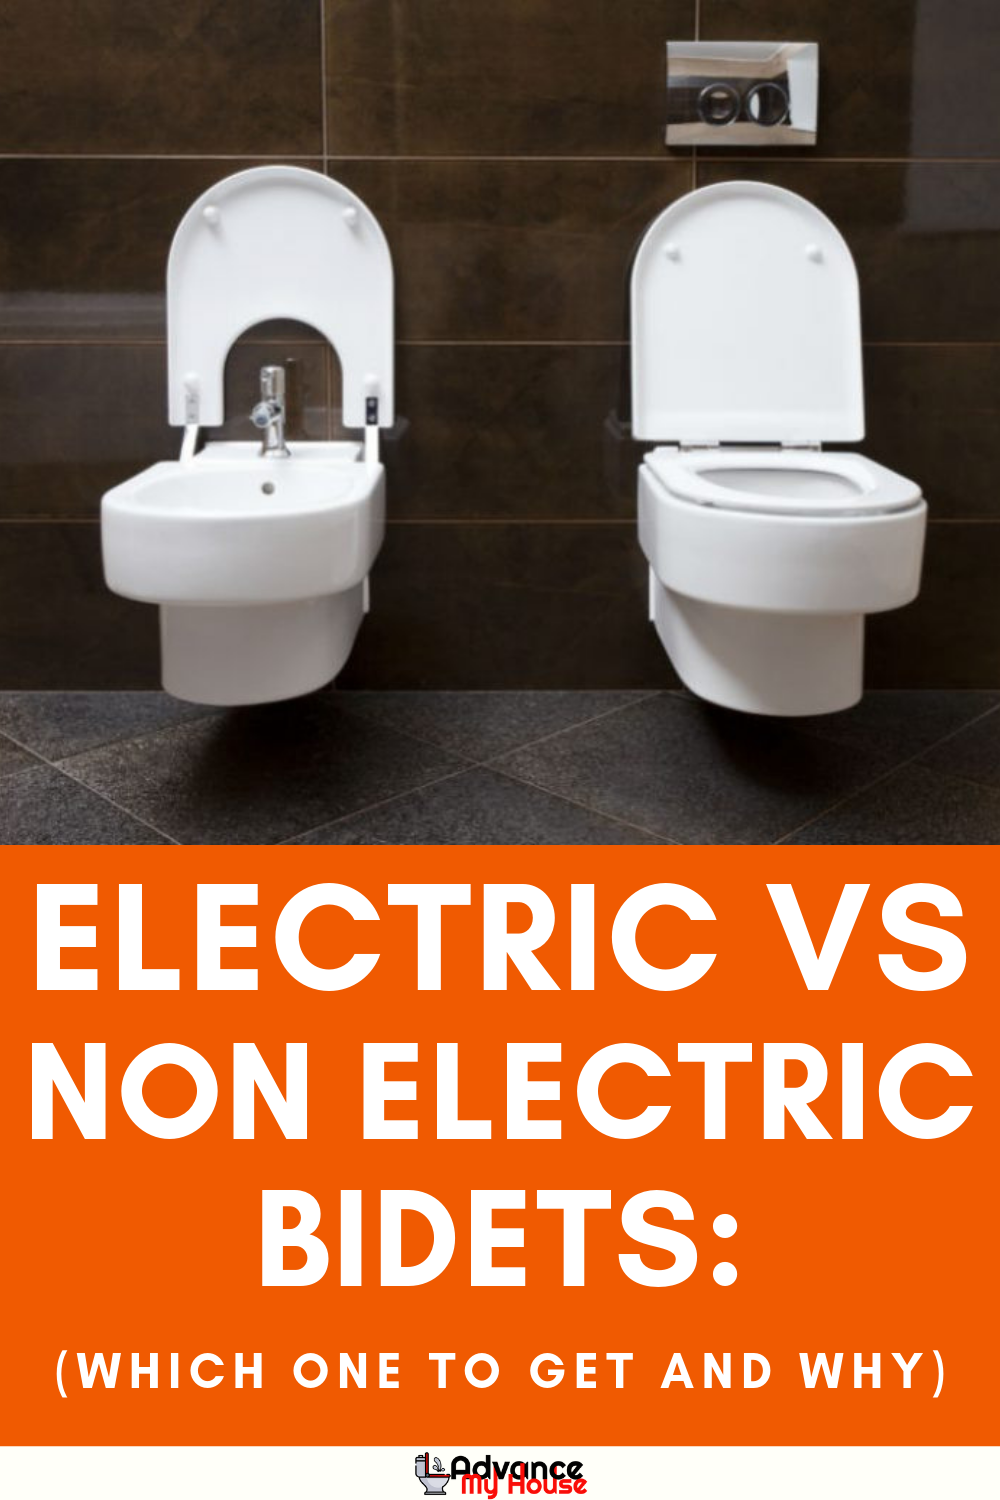 Electric Vs Non Electric Bidets Generally Non Electric Bidets